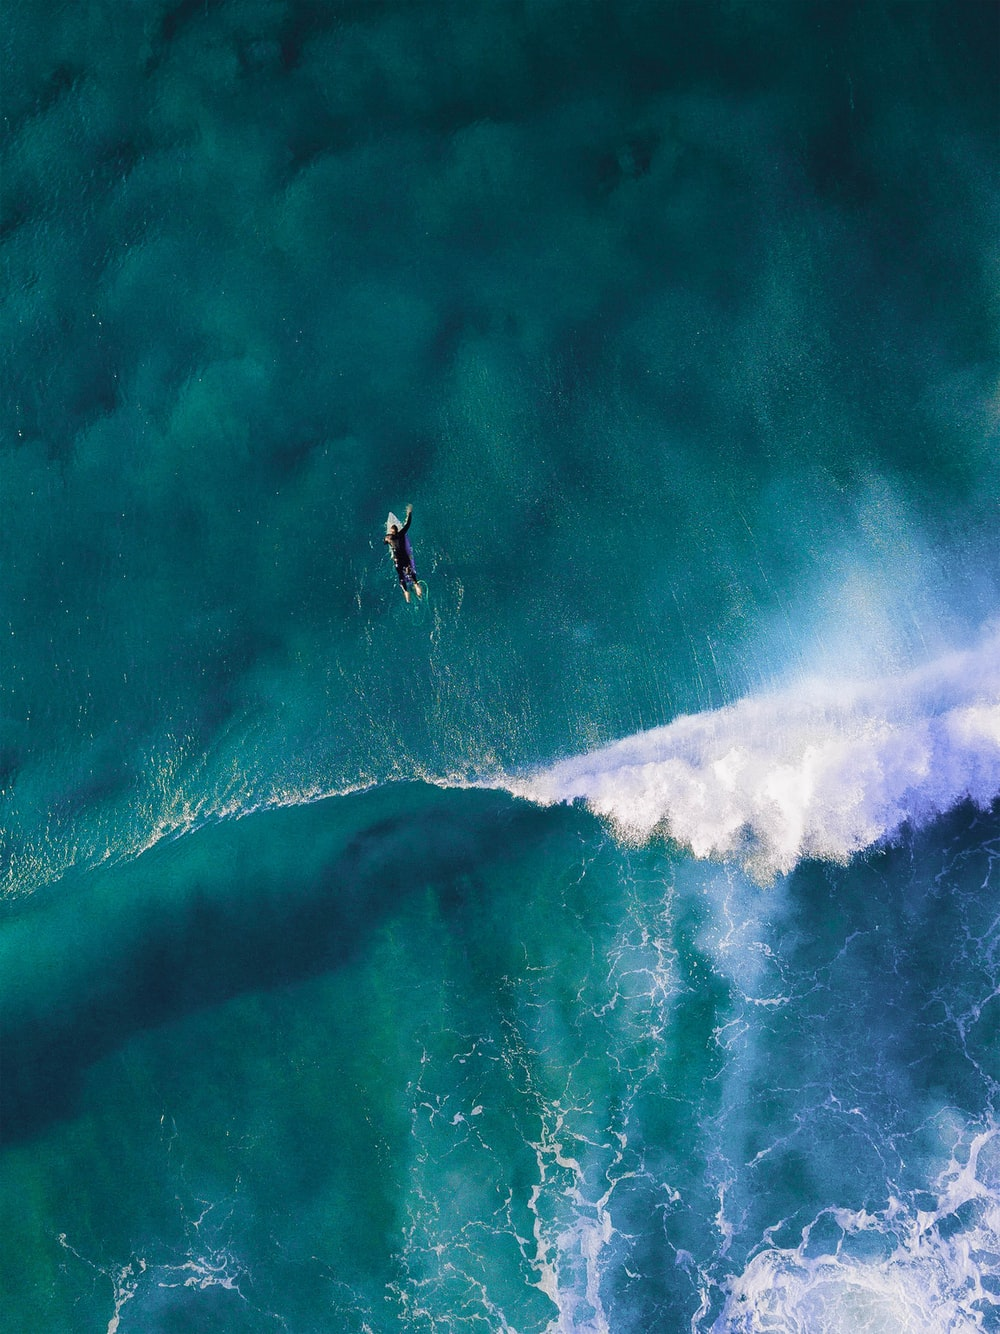 high-angle photography of man surfing giant wave